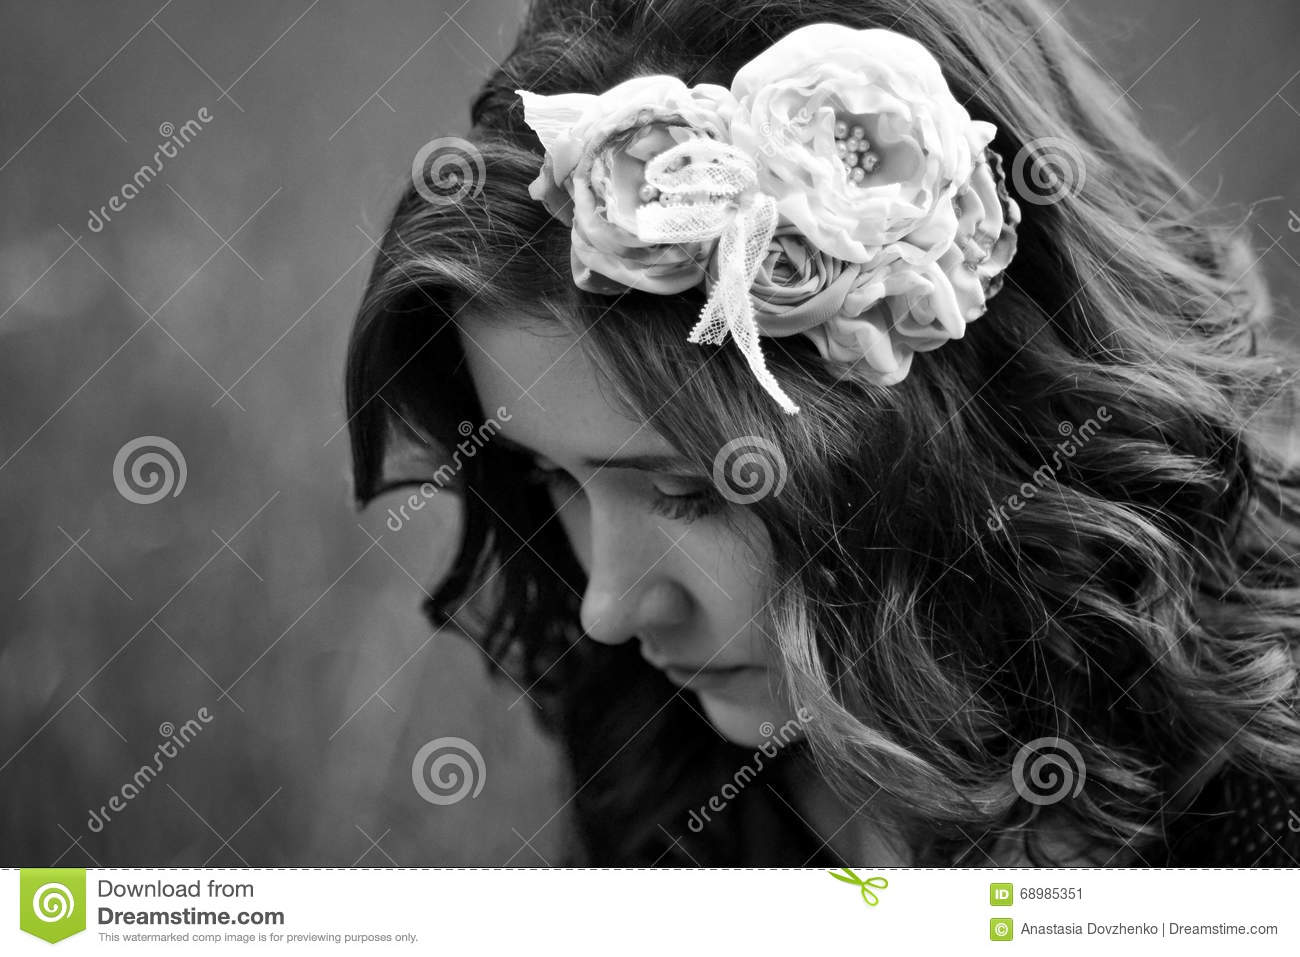 Black and white photo beautiful girl think about problems worry about her boyfriend broken heart lovely